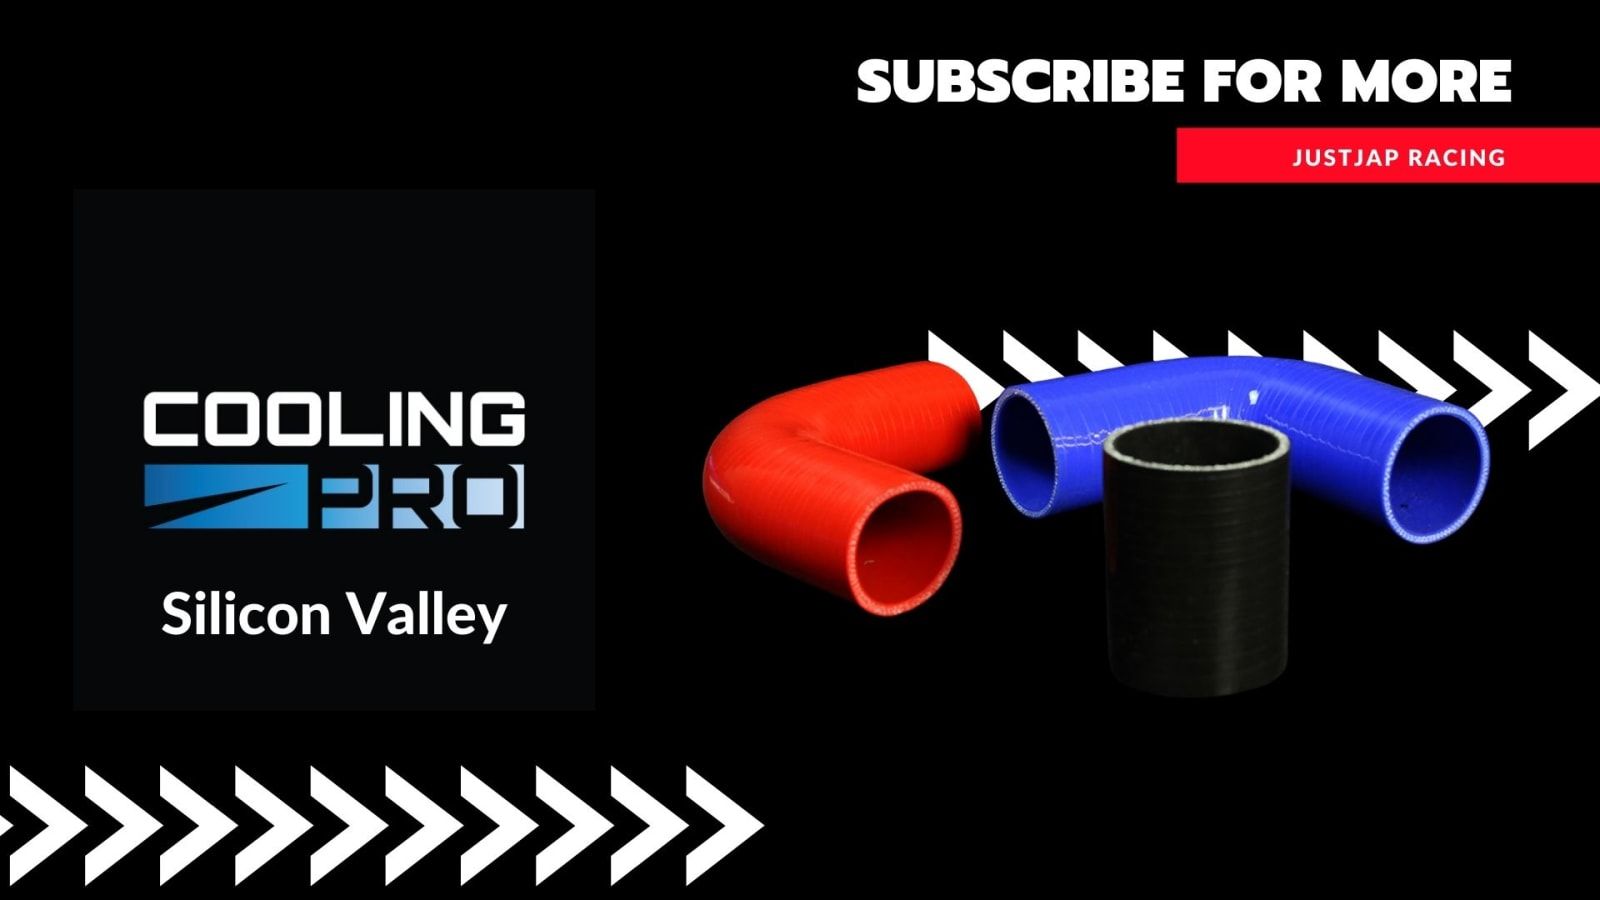 Cooling Pro Silicone 2 Inch / 51mm 135 Degree Bend Hose